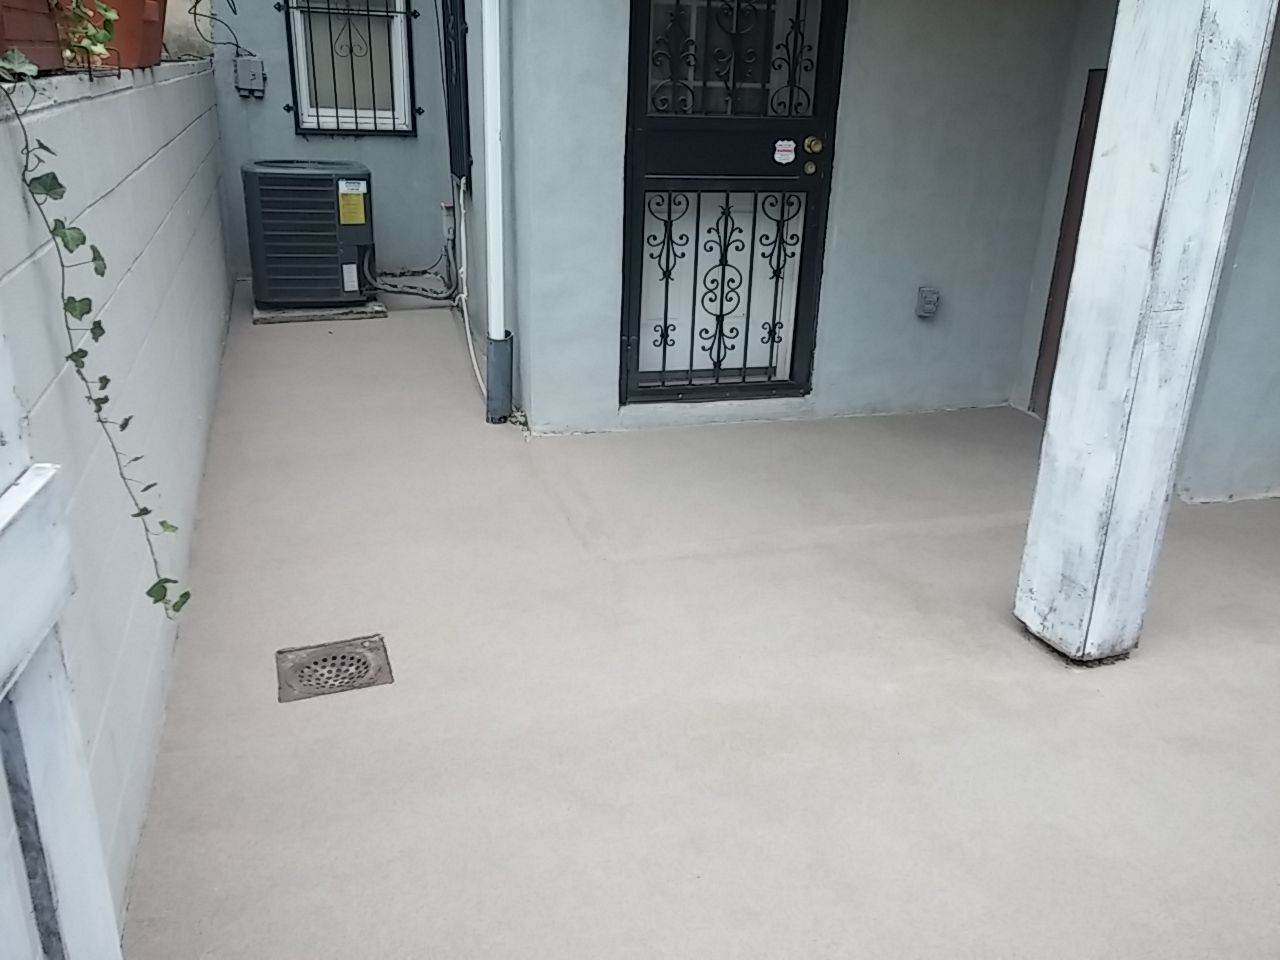 Decorative Concrete Floors, Basement Waterproofing   The Concrete Protector  Of Philadelphia   Upper Darby,